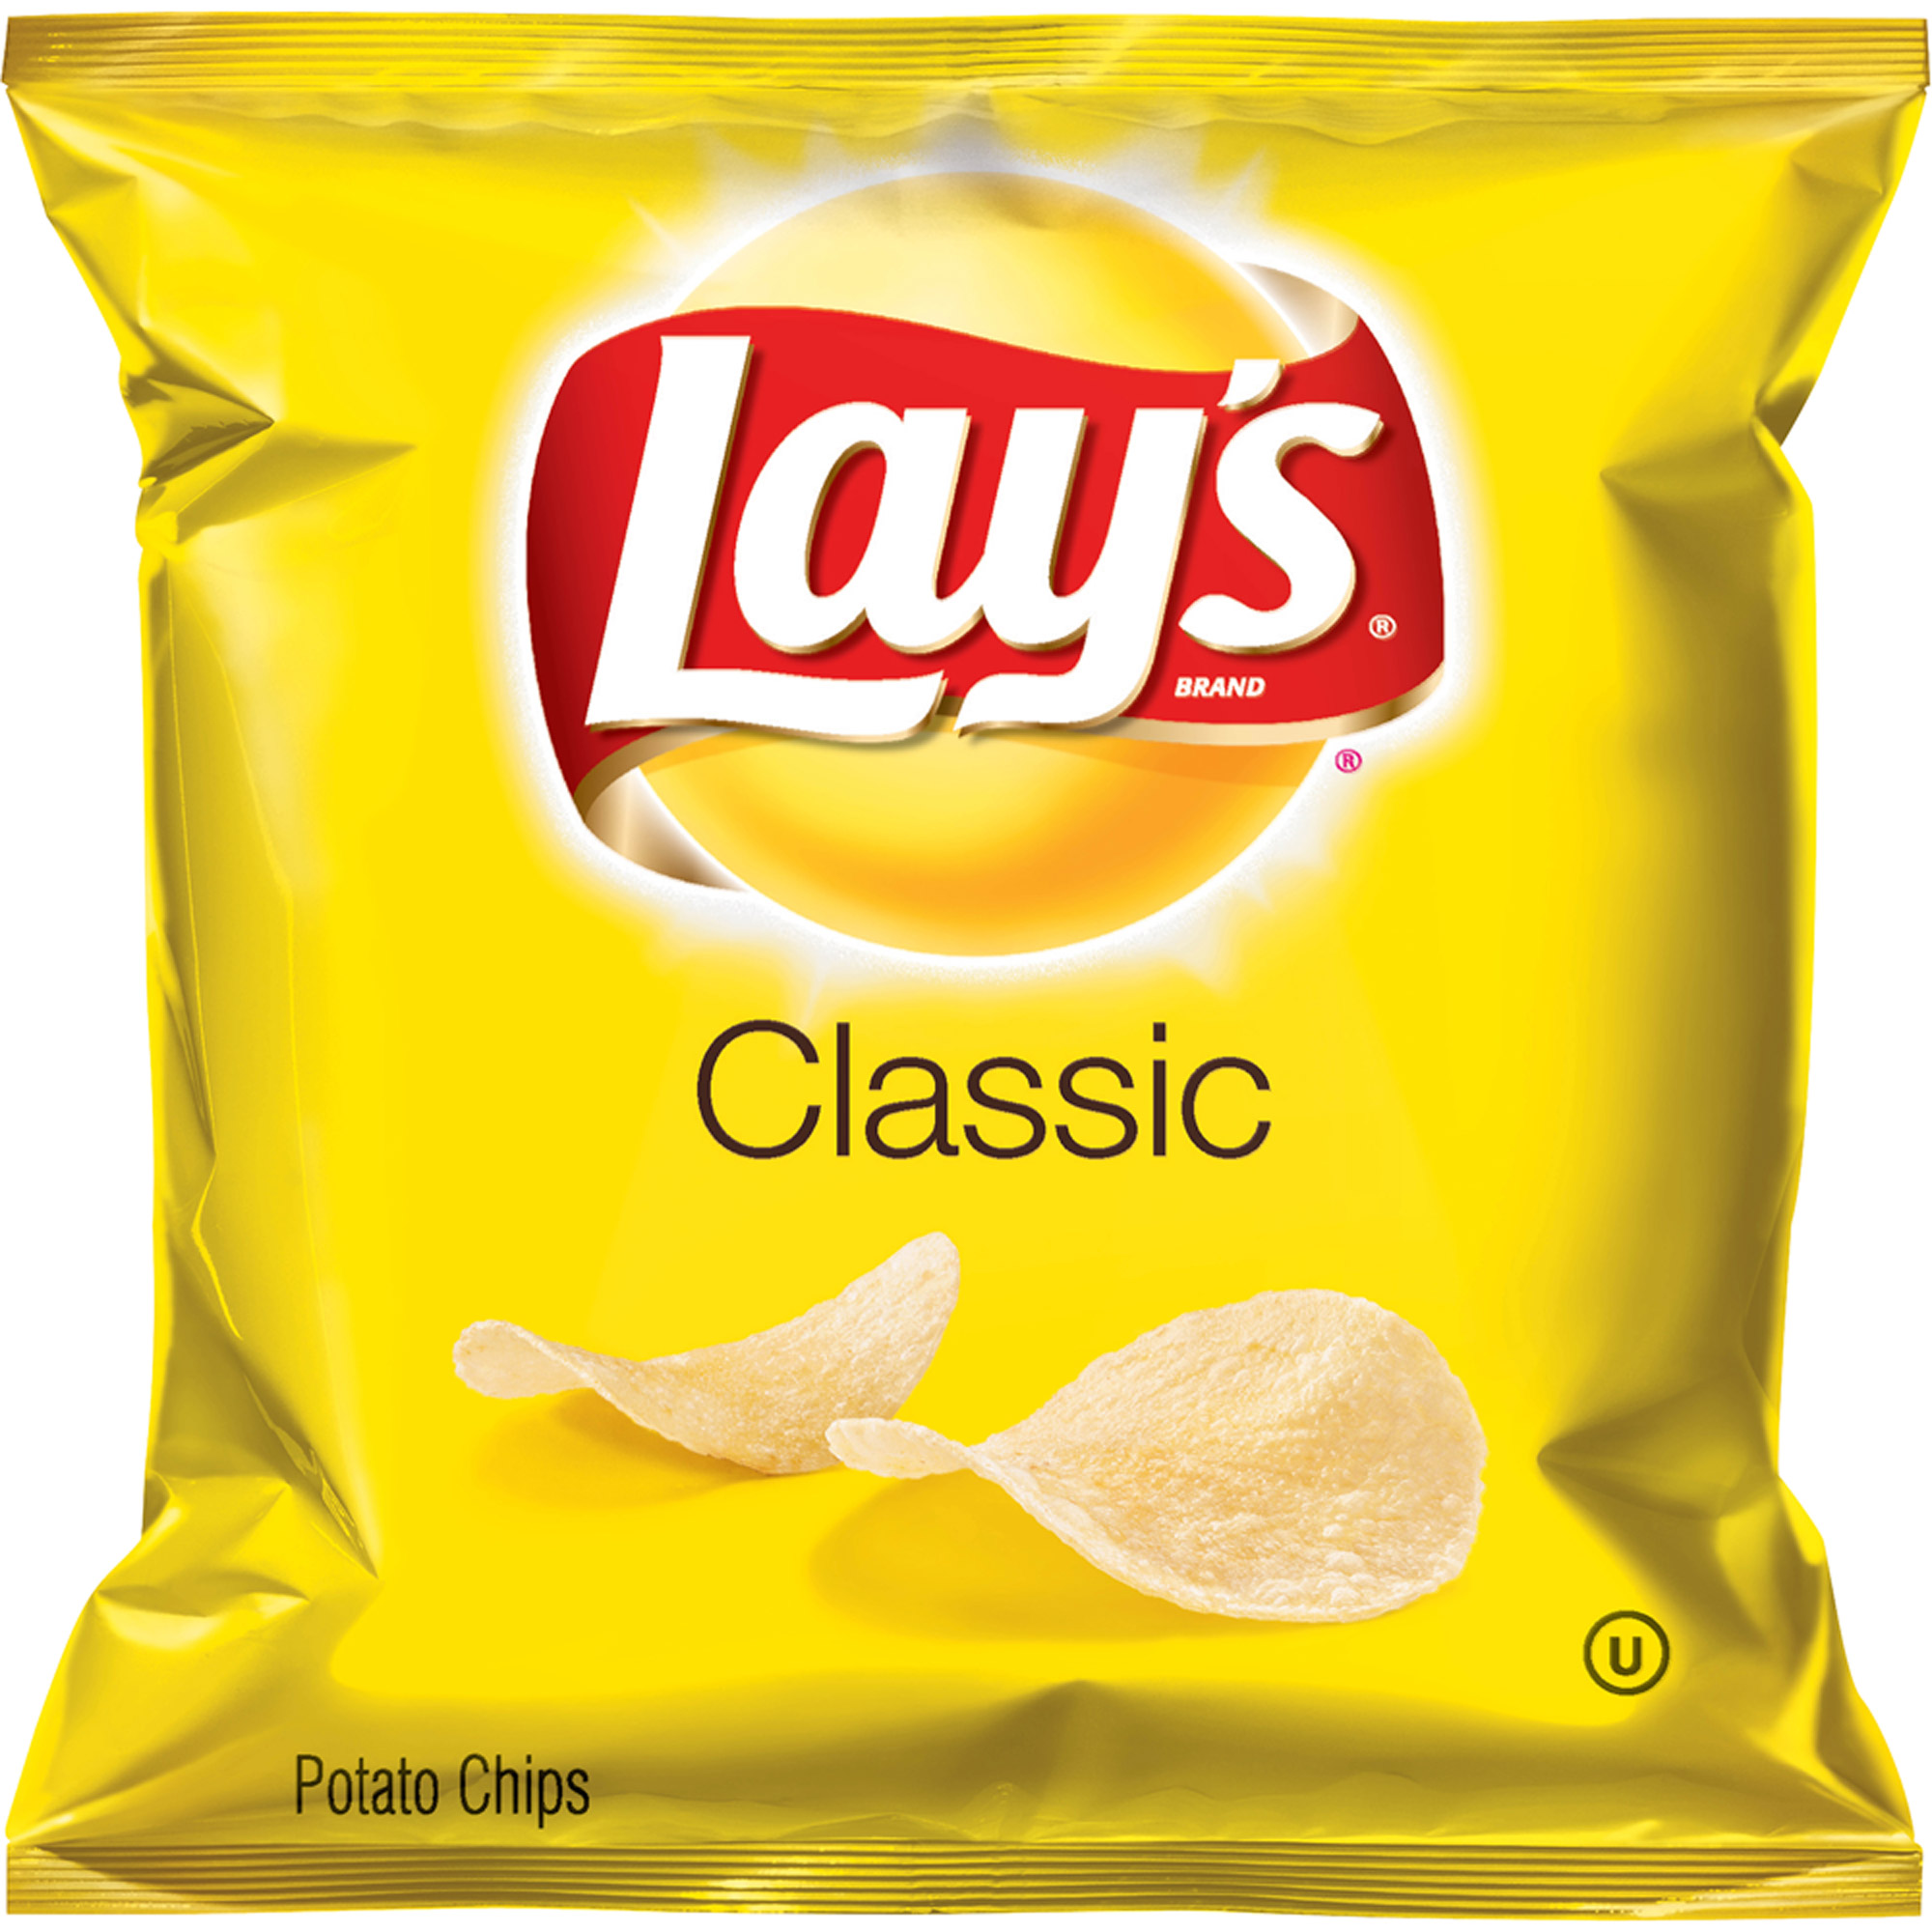 Chips clipart bag chip. This video proves that